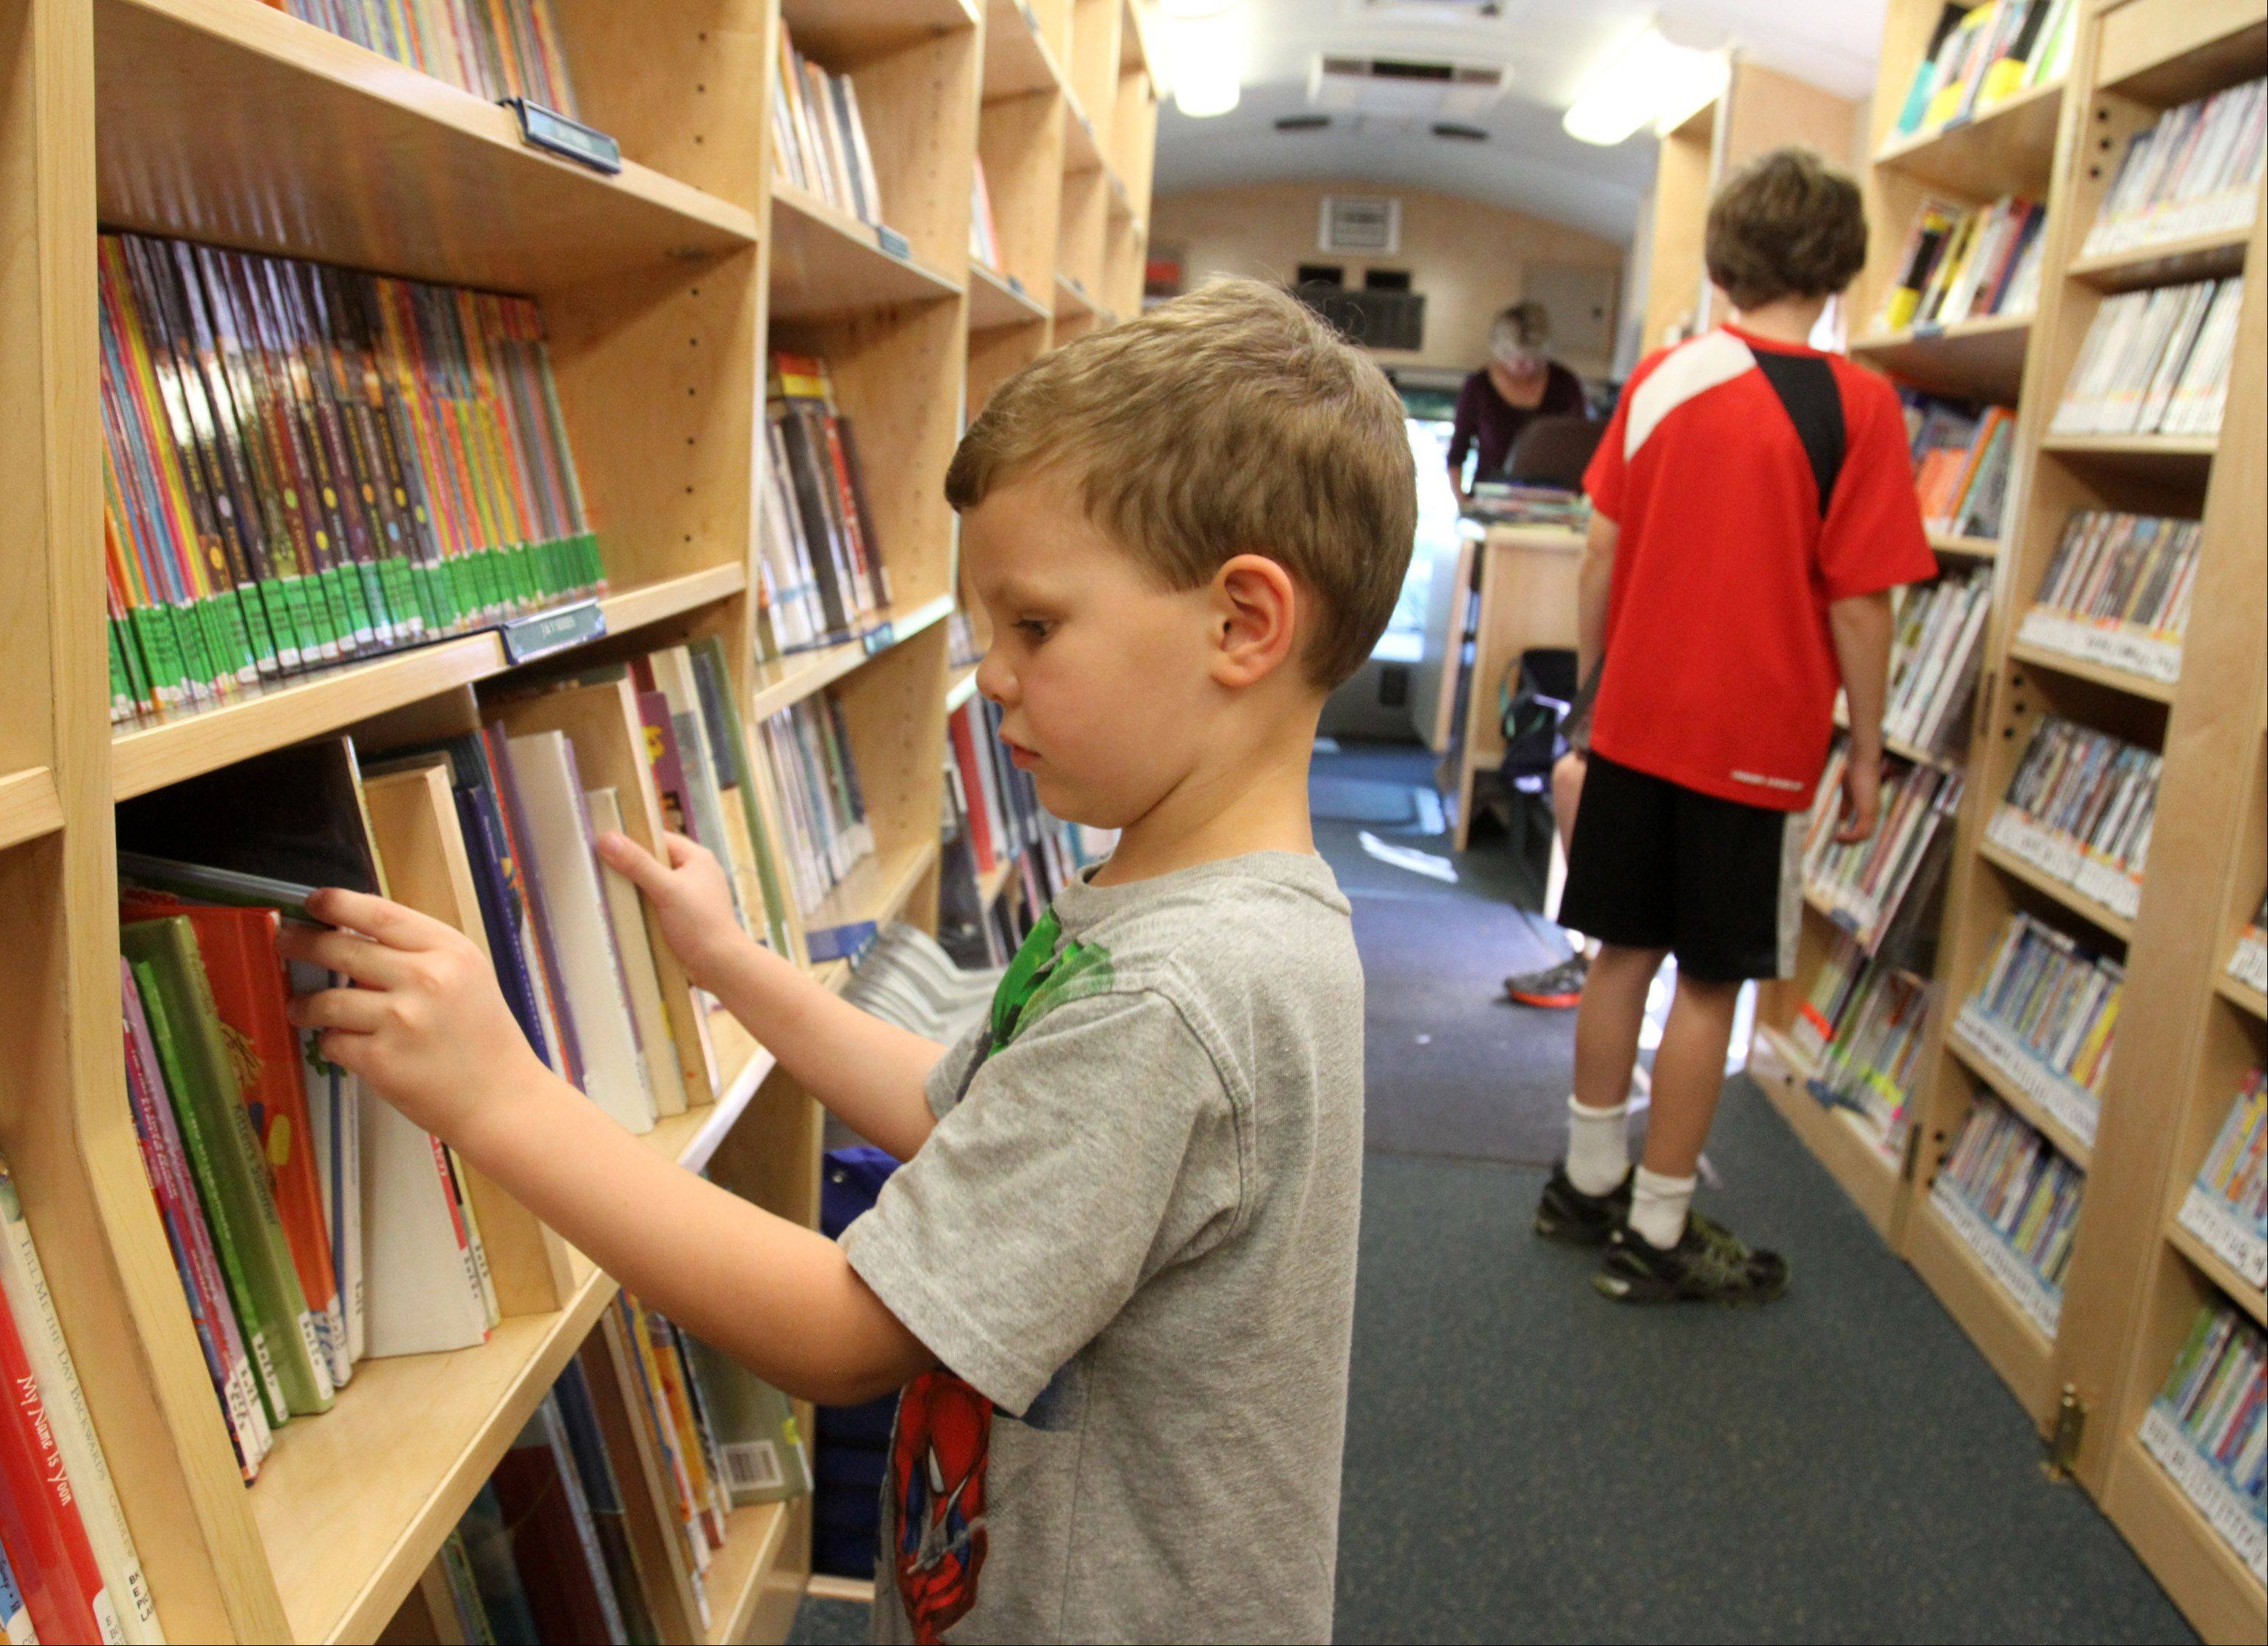 Arlington Hts. bookmobile more than mobile library